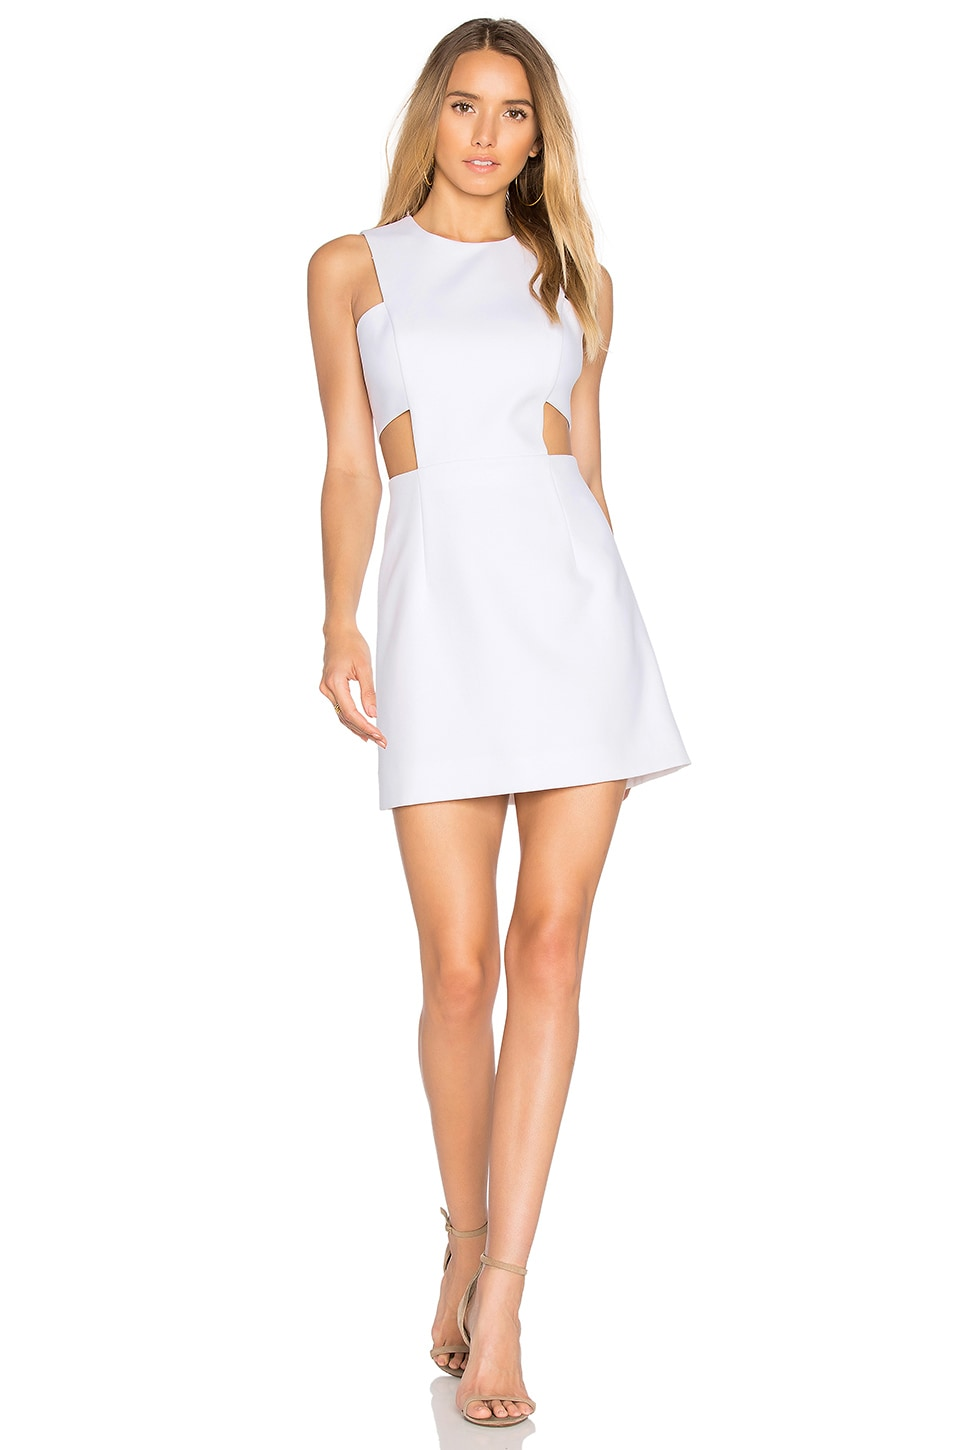 MILLY Cut Out Mini Dress in White | REVOLVE